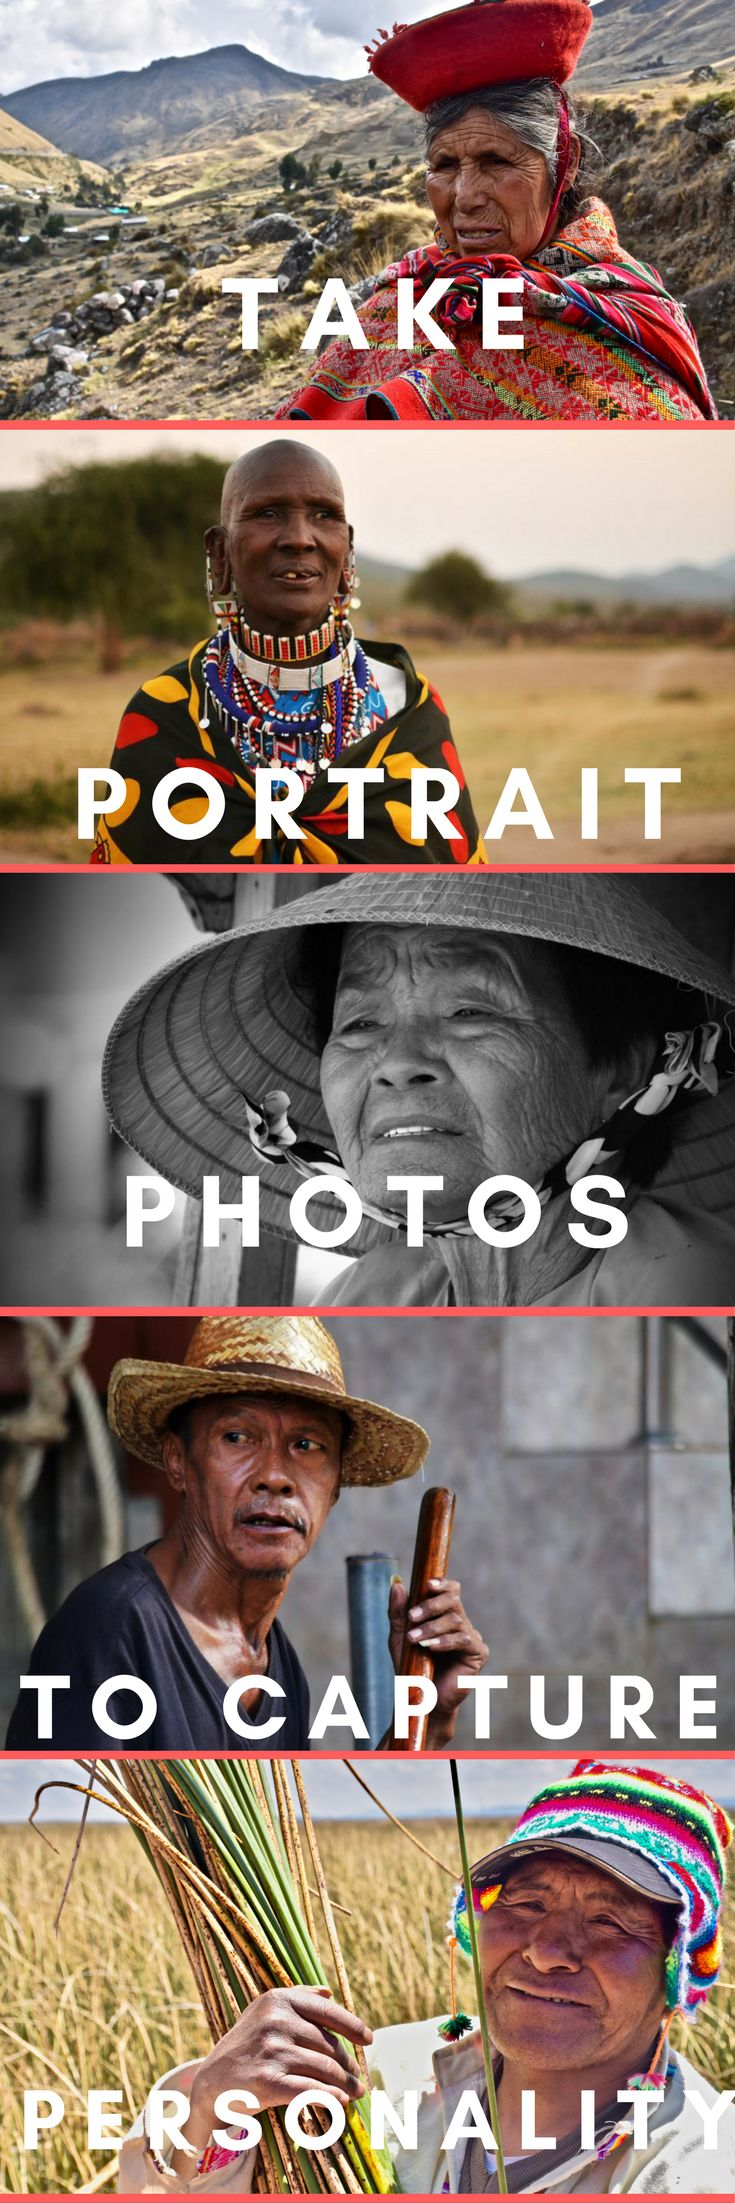 Do you want to capture natural personality every time you take a portrait photo of a person you meet whilst travelling? Do you want clear striking, creative photos? Need some photography inspiration? Follow these super easy tips to make your portrait photos awesome!